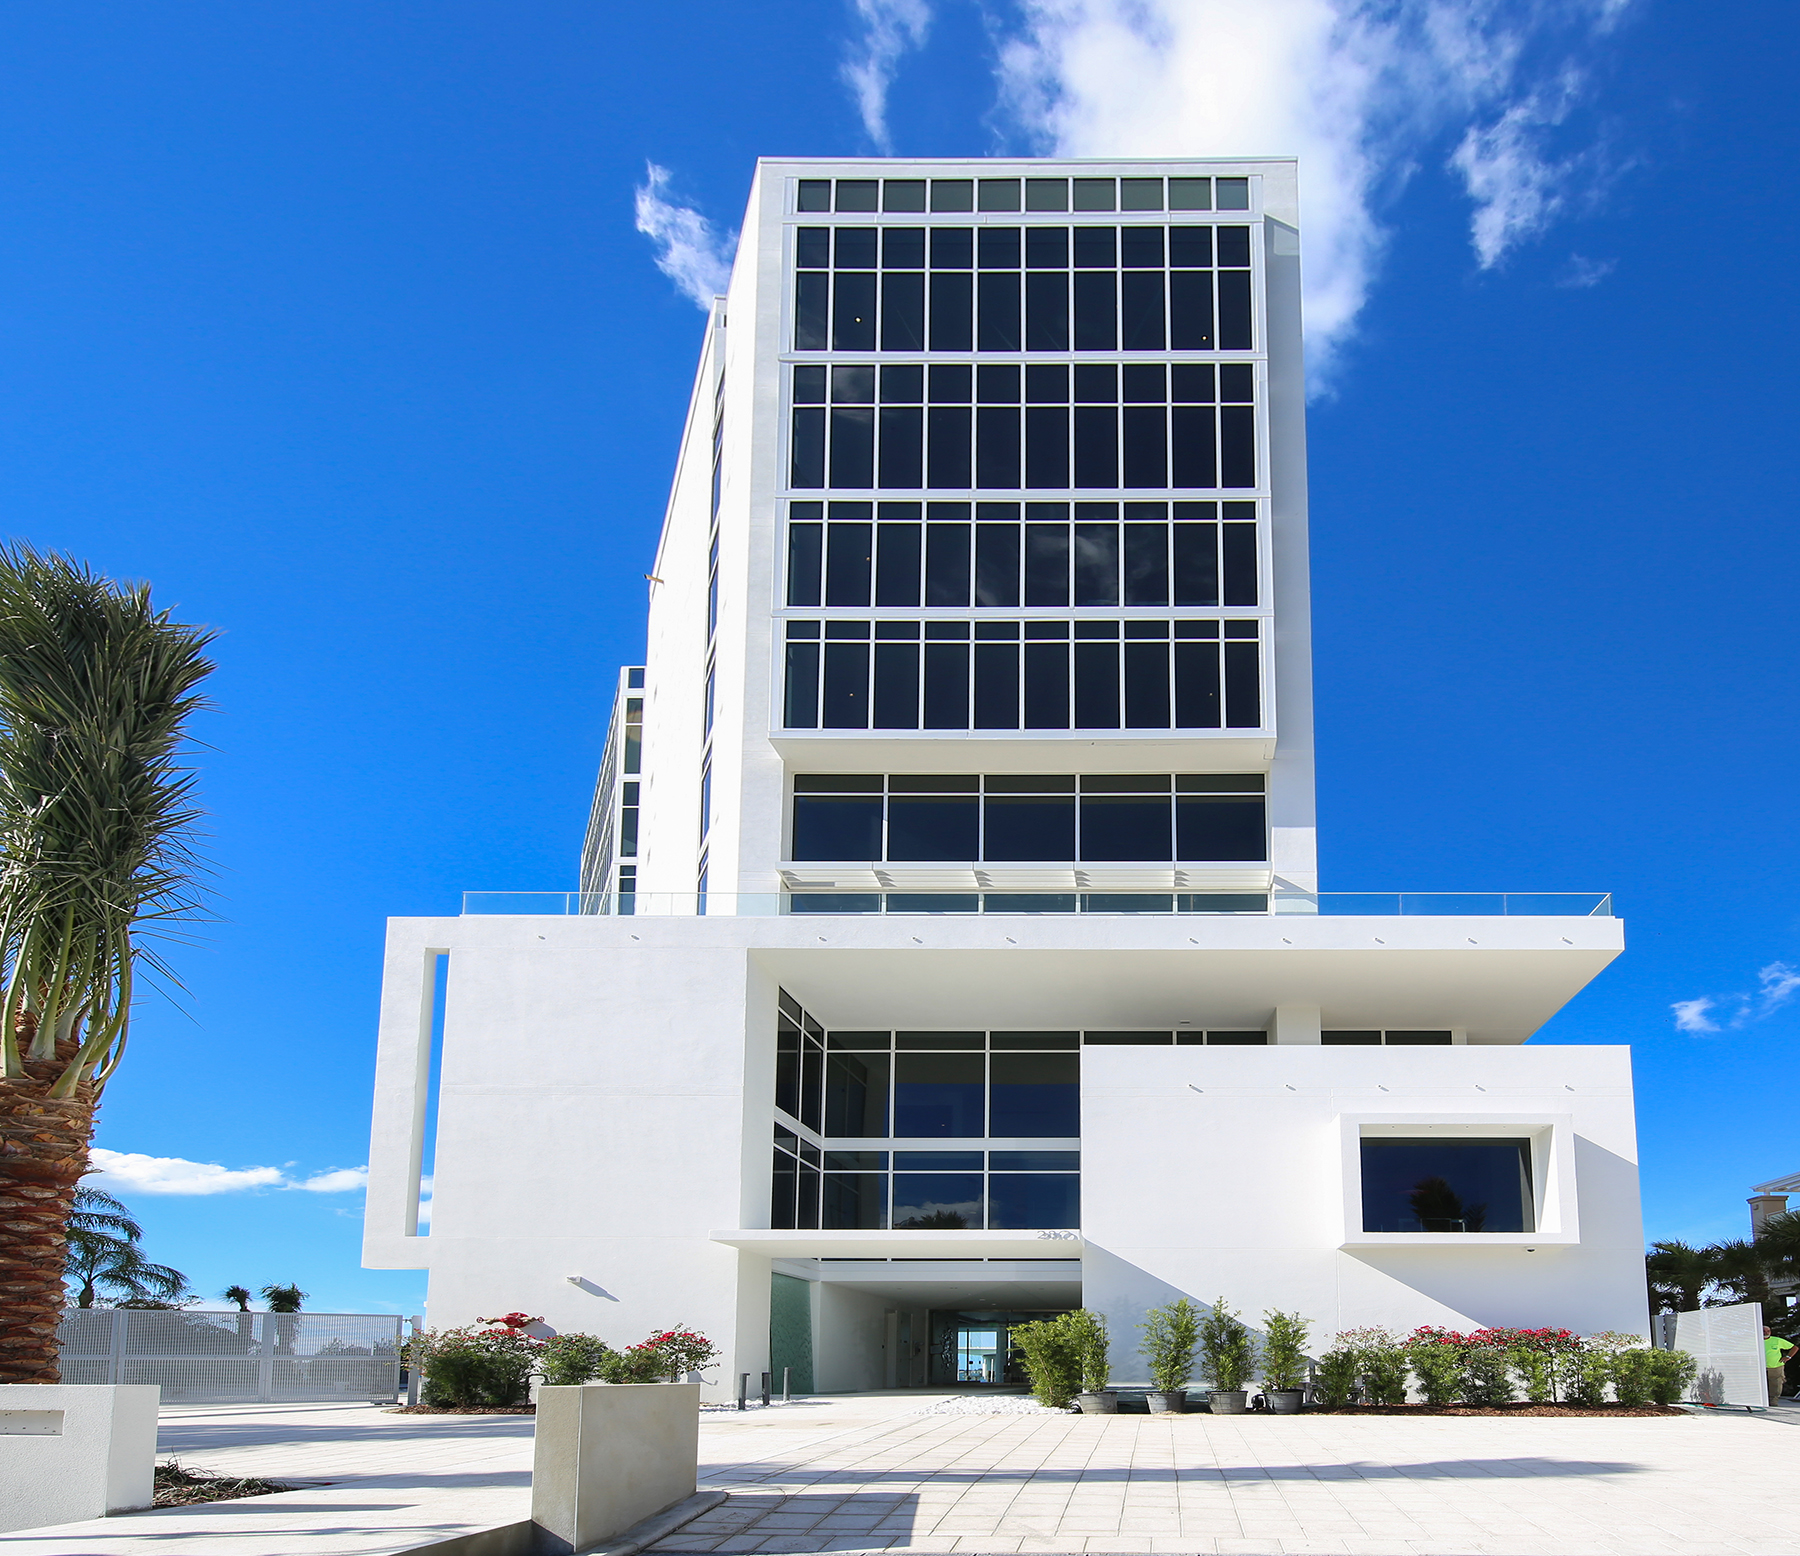 Condominium for Sale at AQUA 280 Golden Gate Pt Grand Resid Sarasota, Florida, 34236 United States